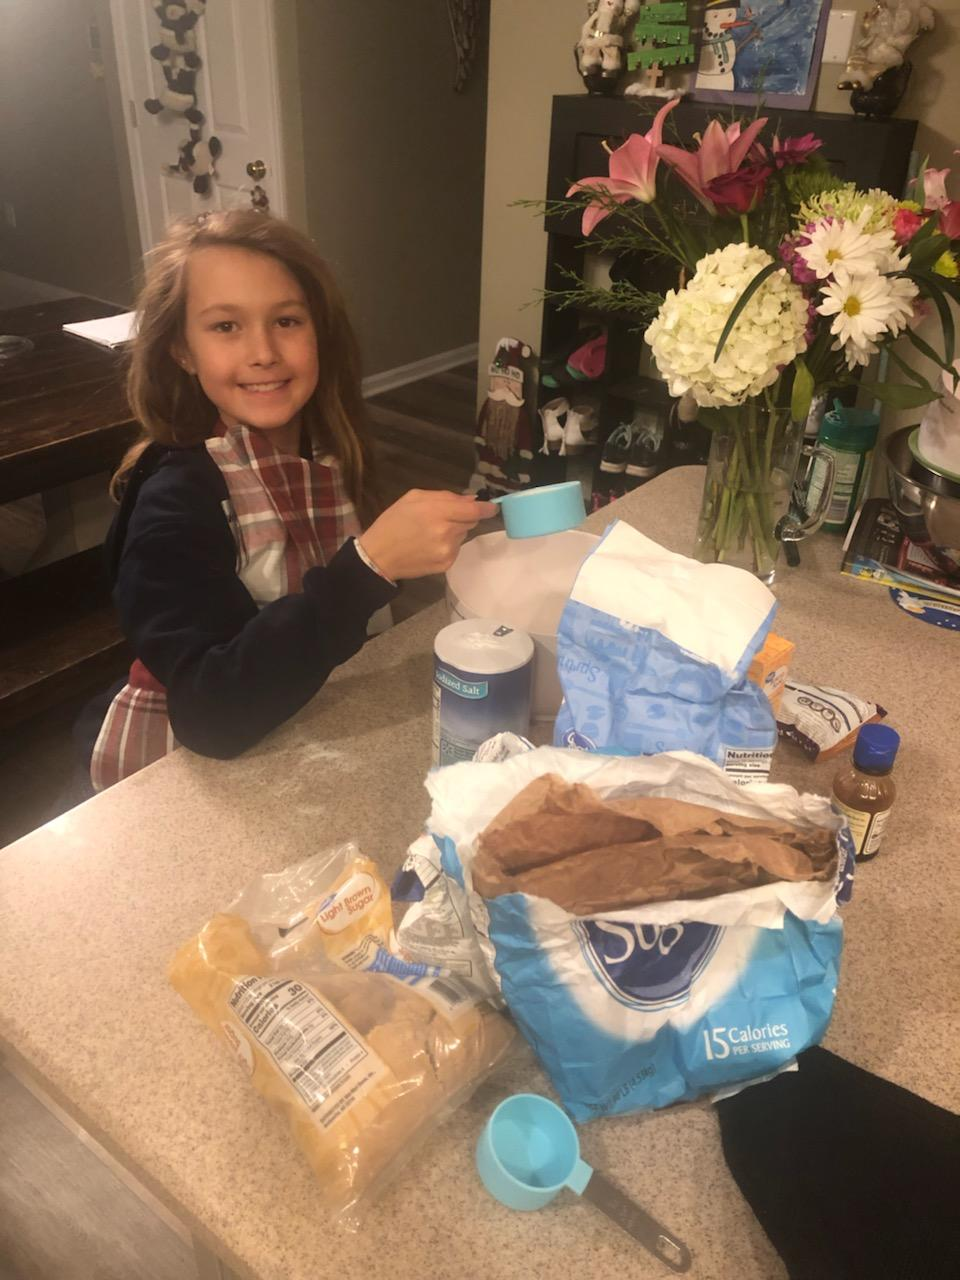 Mrs. Budney's daughter Kynlee, who is nine, loves to bake, and helped her mom make the first place cookies.